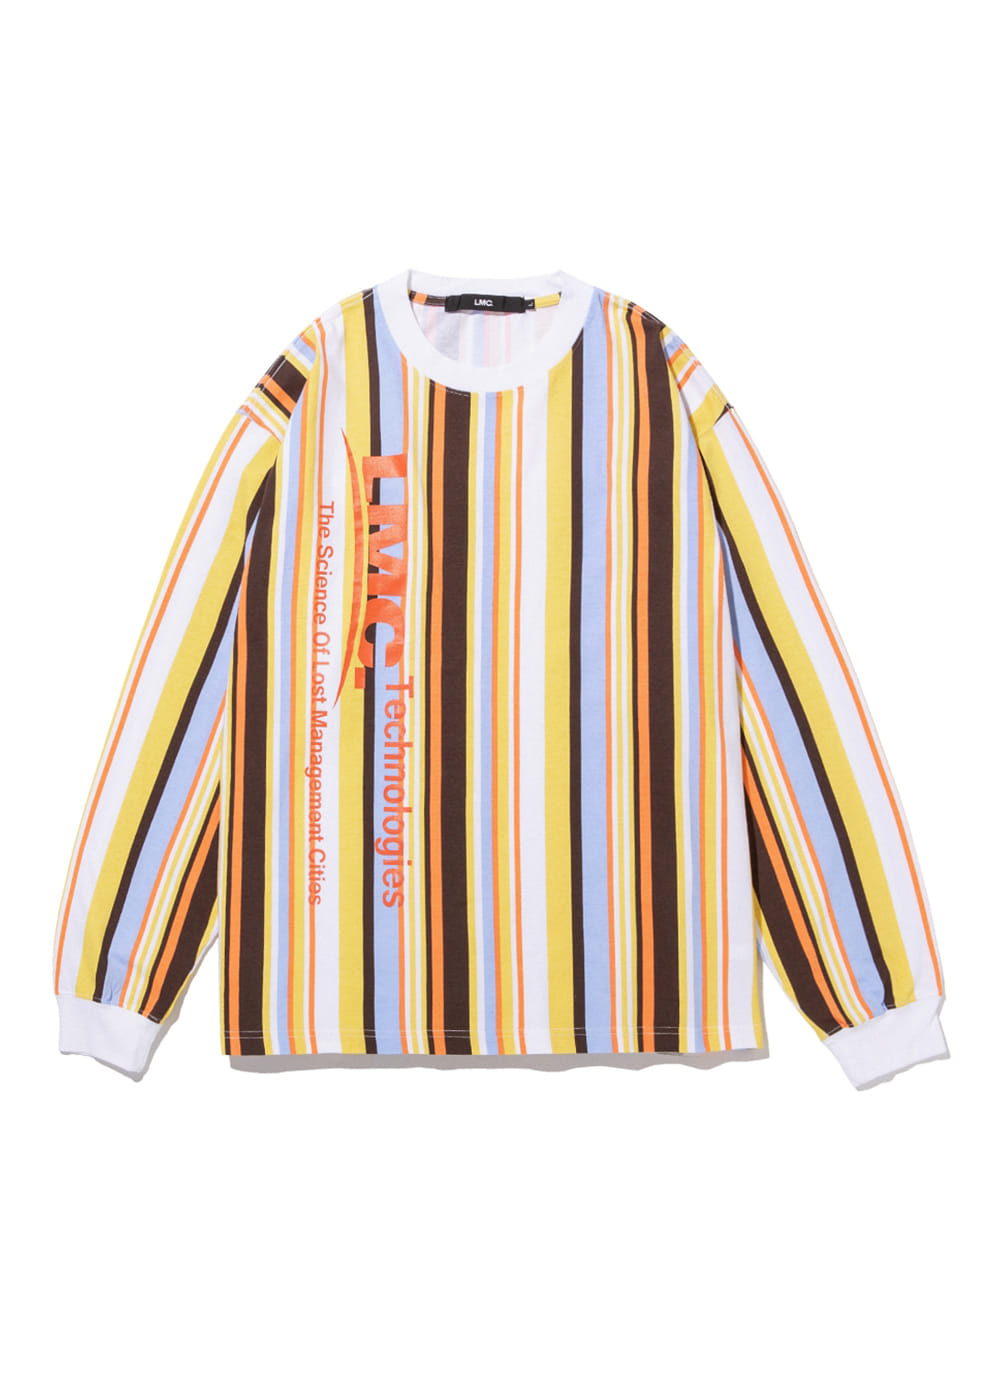 LMC VERTICAL MULTI STRIPE LONG SLV TEE yellow